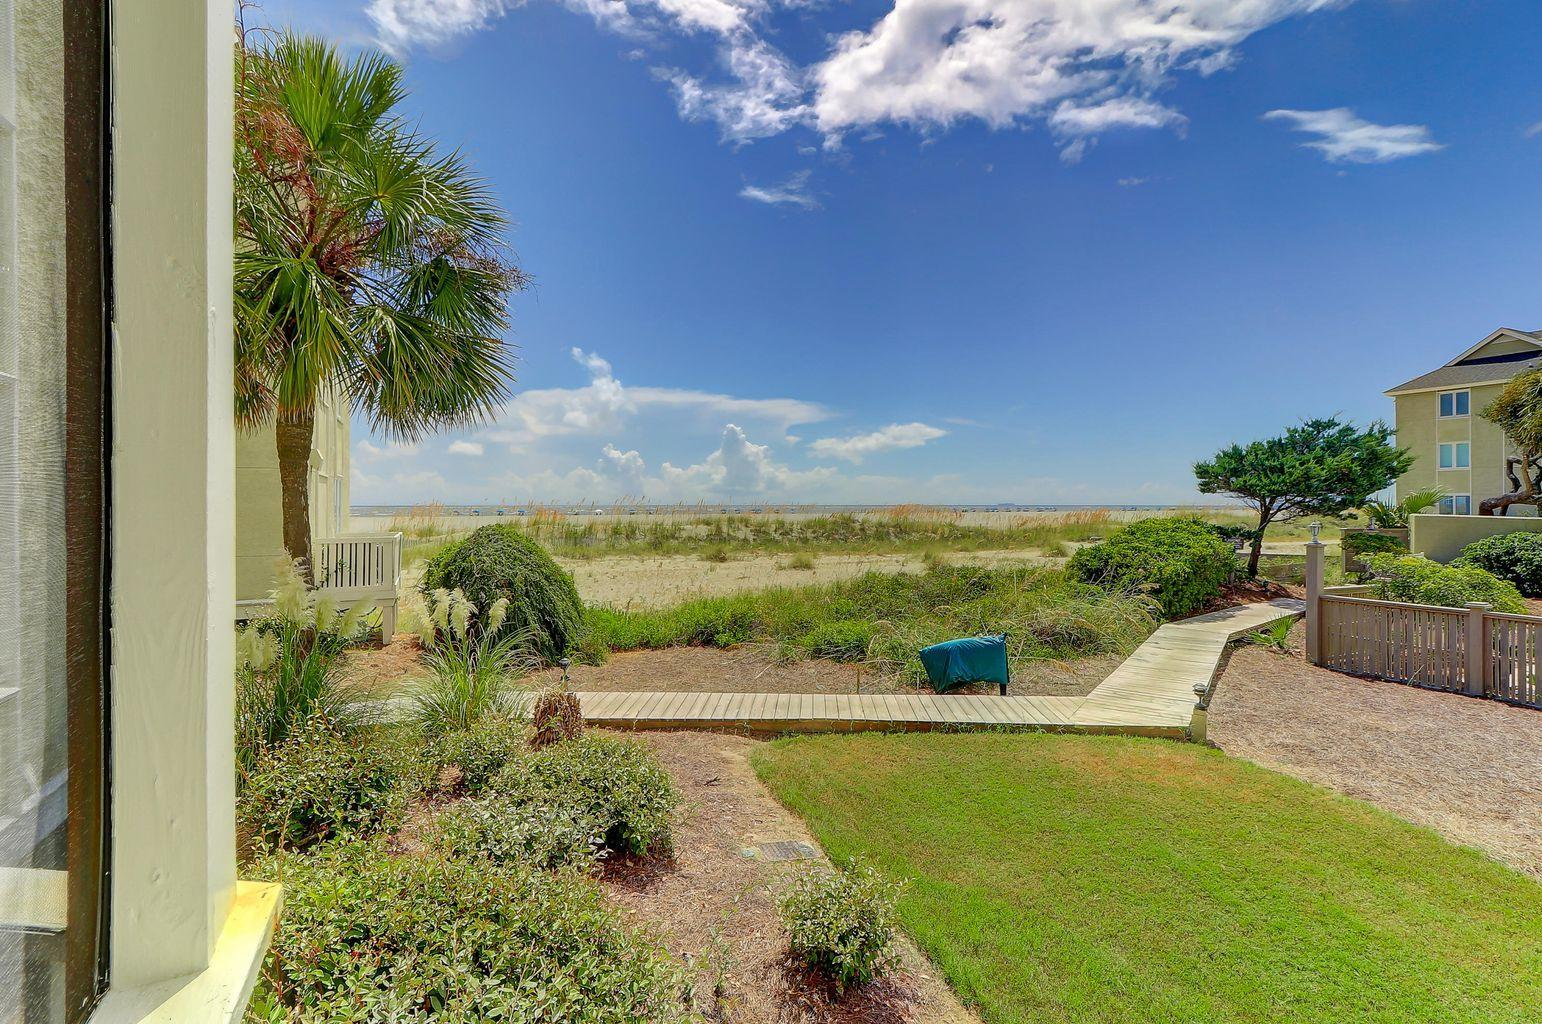 104 E Port O' Call Isle Of Palms, SC 29451